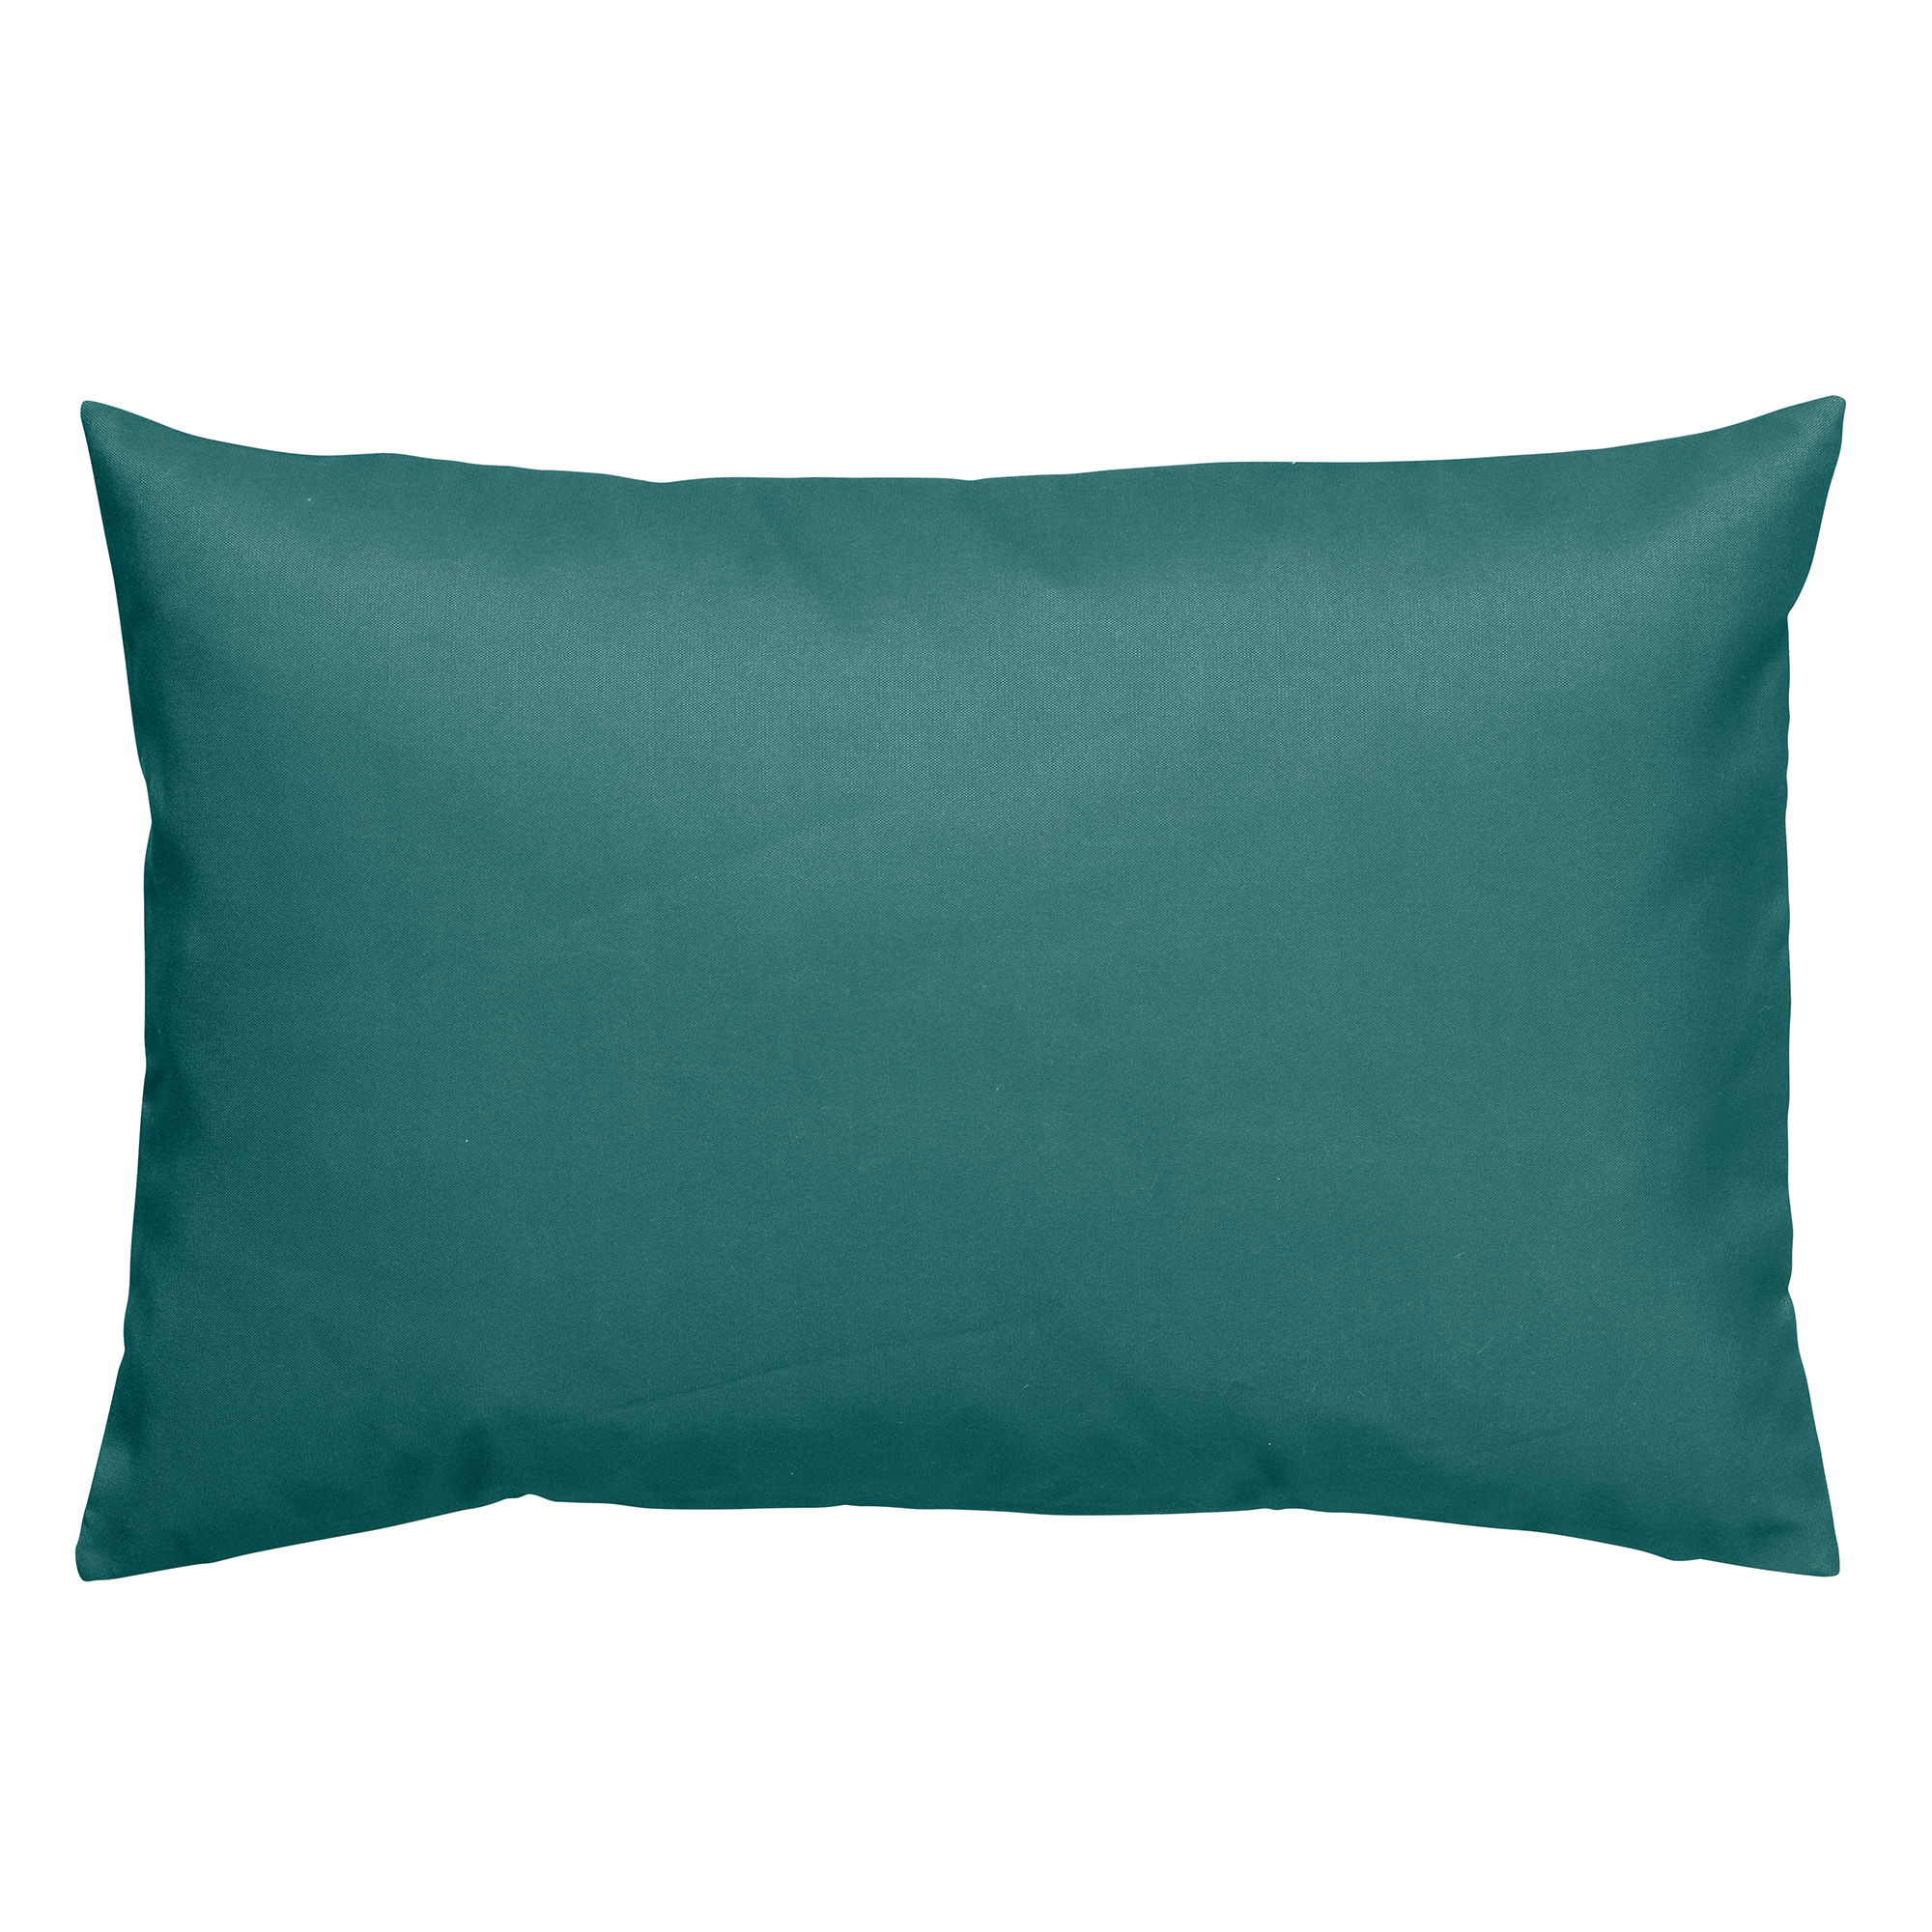 SANTORINI - Kussenhoes outdoor Sagebrush Green 40x60 cm